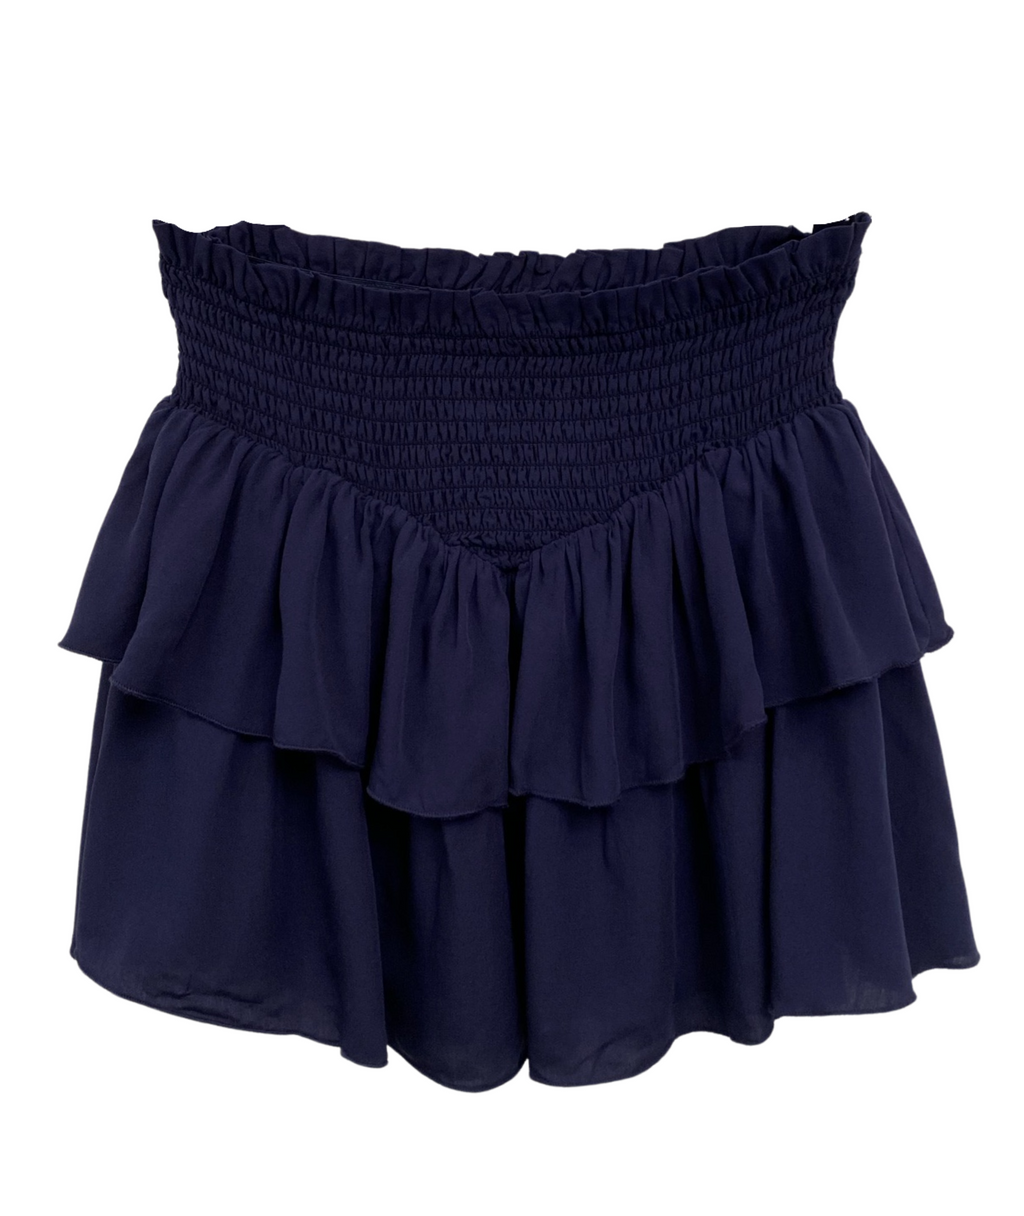 Katie J NYC Girls Brooke Navy Skirt